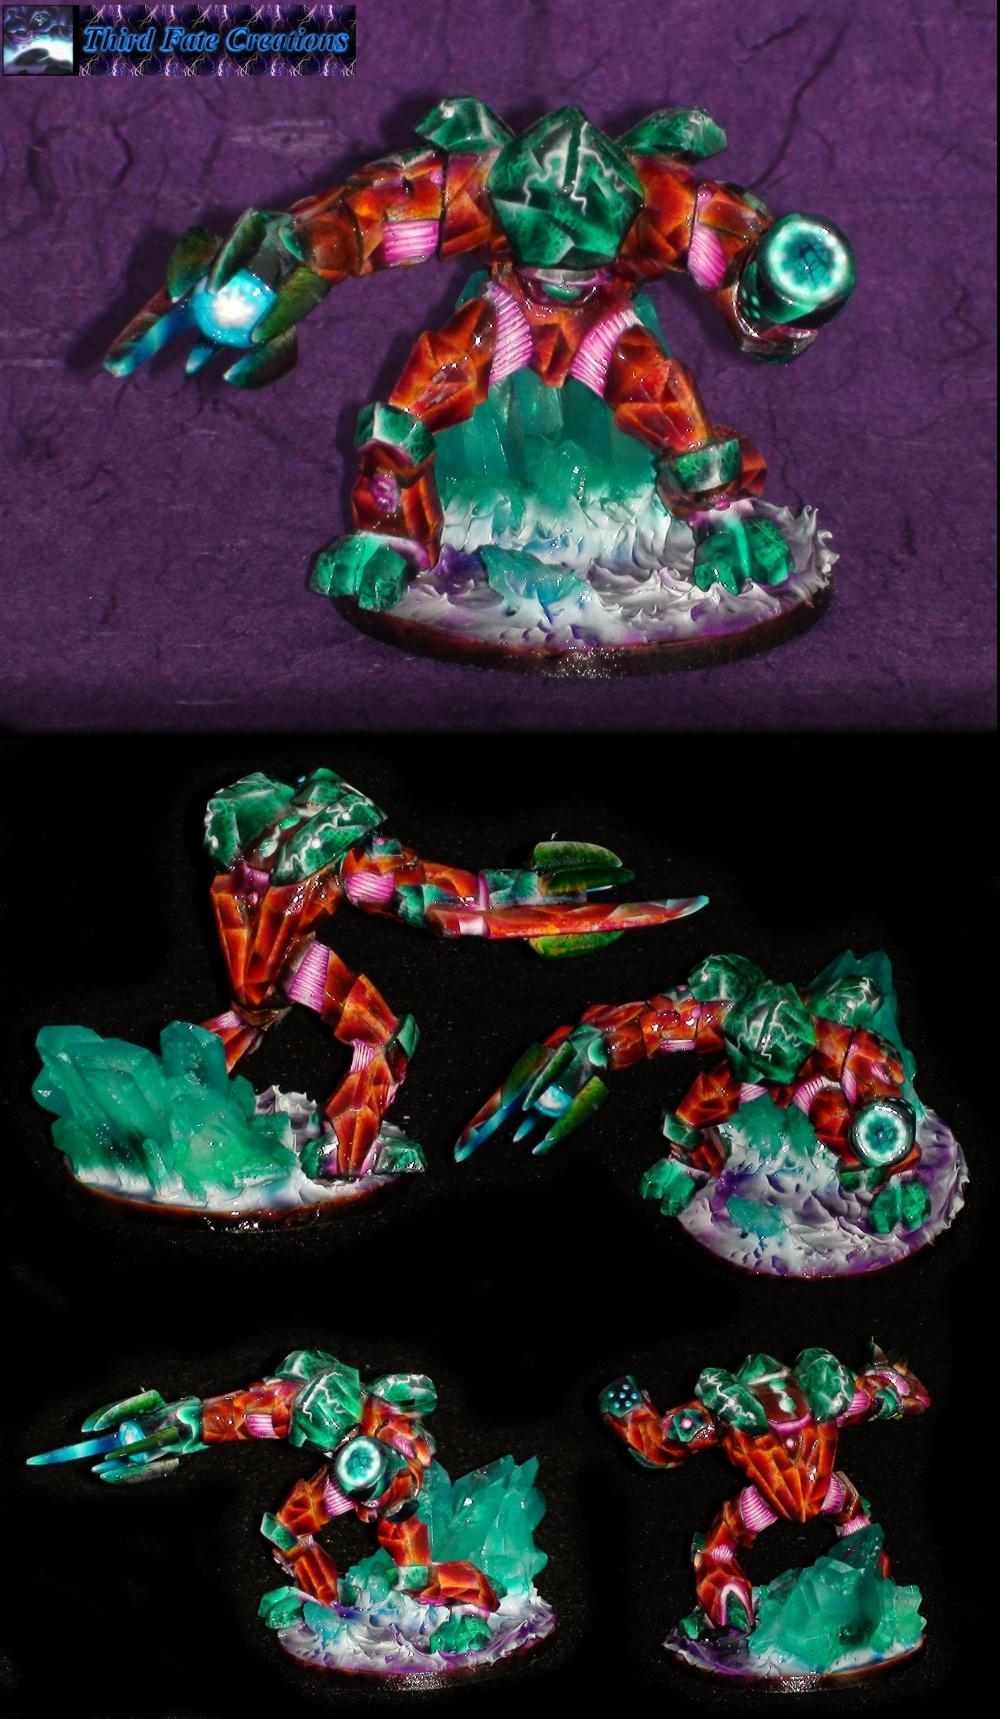 Airbrush, Amp, Ampsuit, Atropos907, Crystal, Glow, Object Source Lighting, Power Suit, Shard, Suit, Thirdfatecreations.com